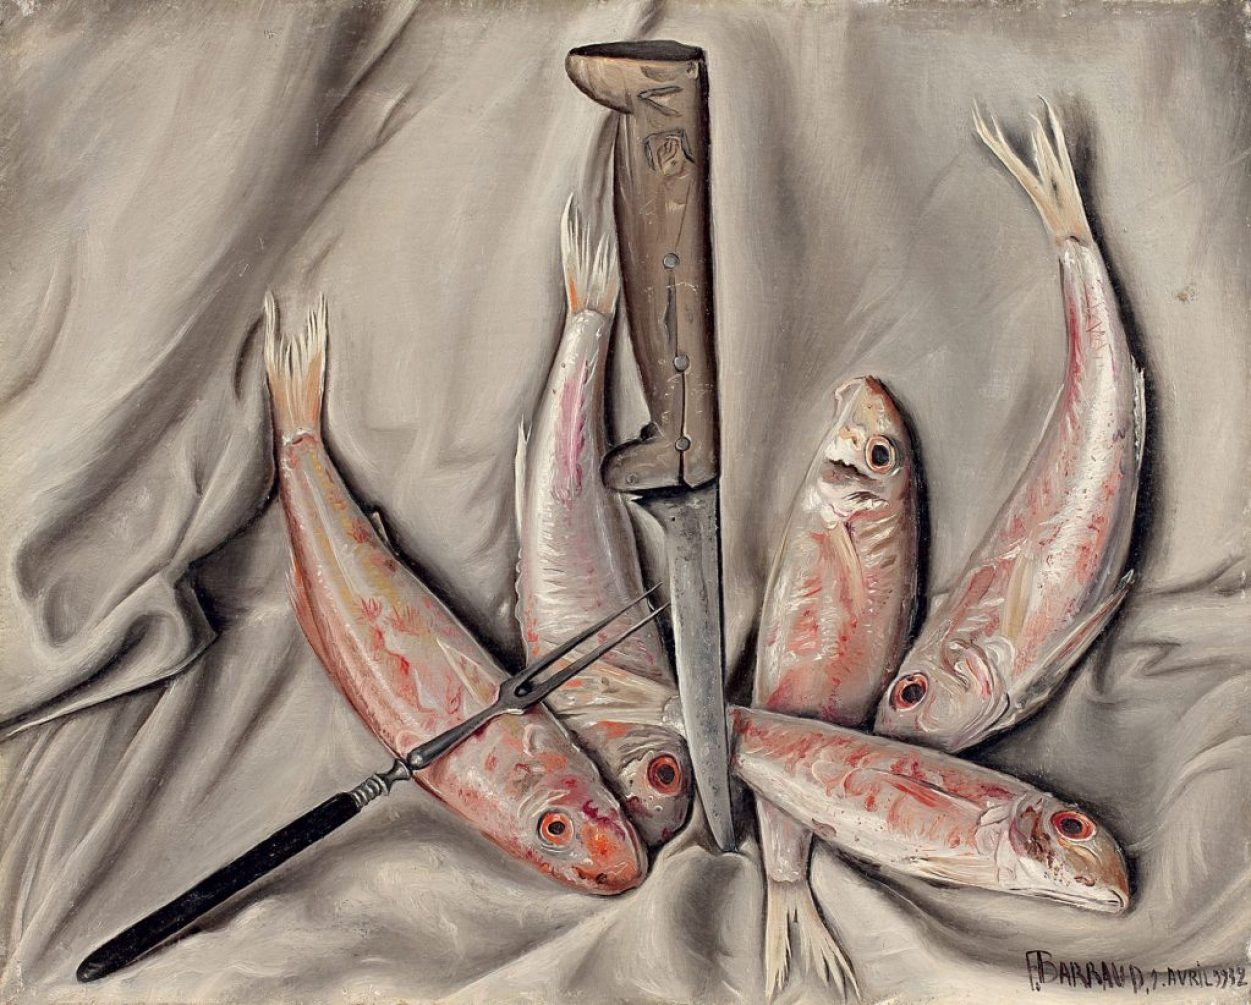 Francois_Barraud_Rougets_poissons_davril